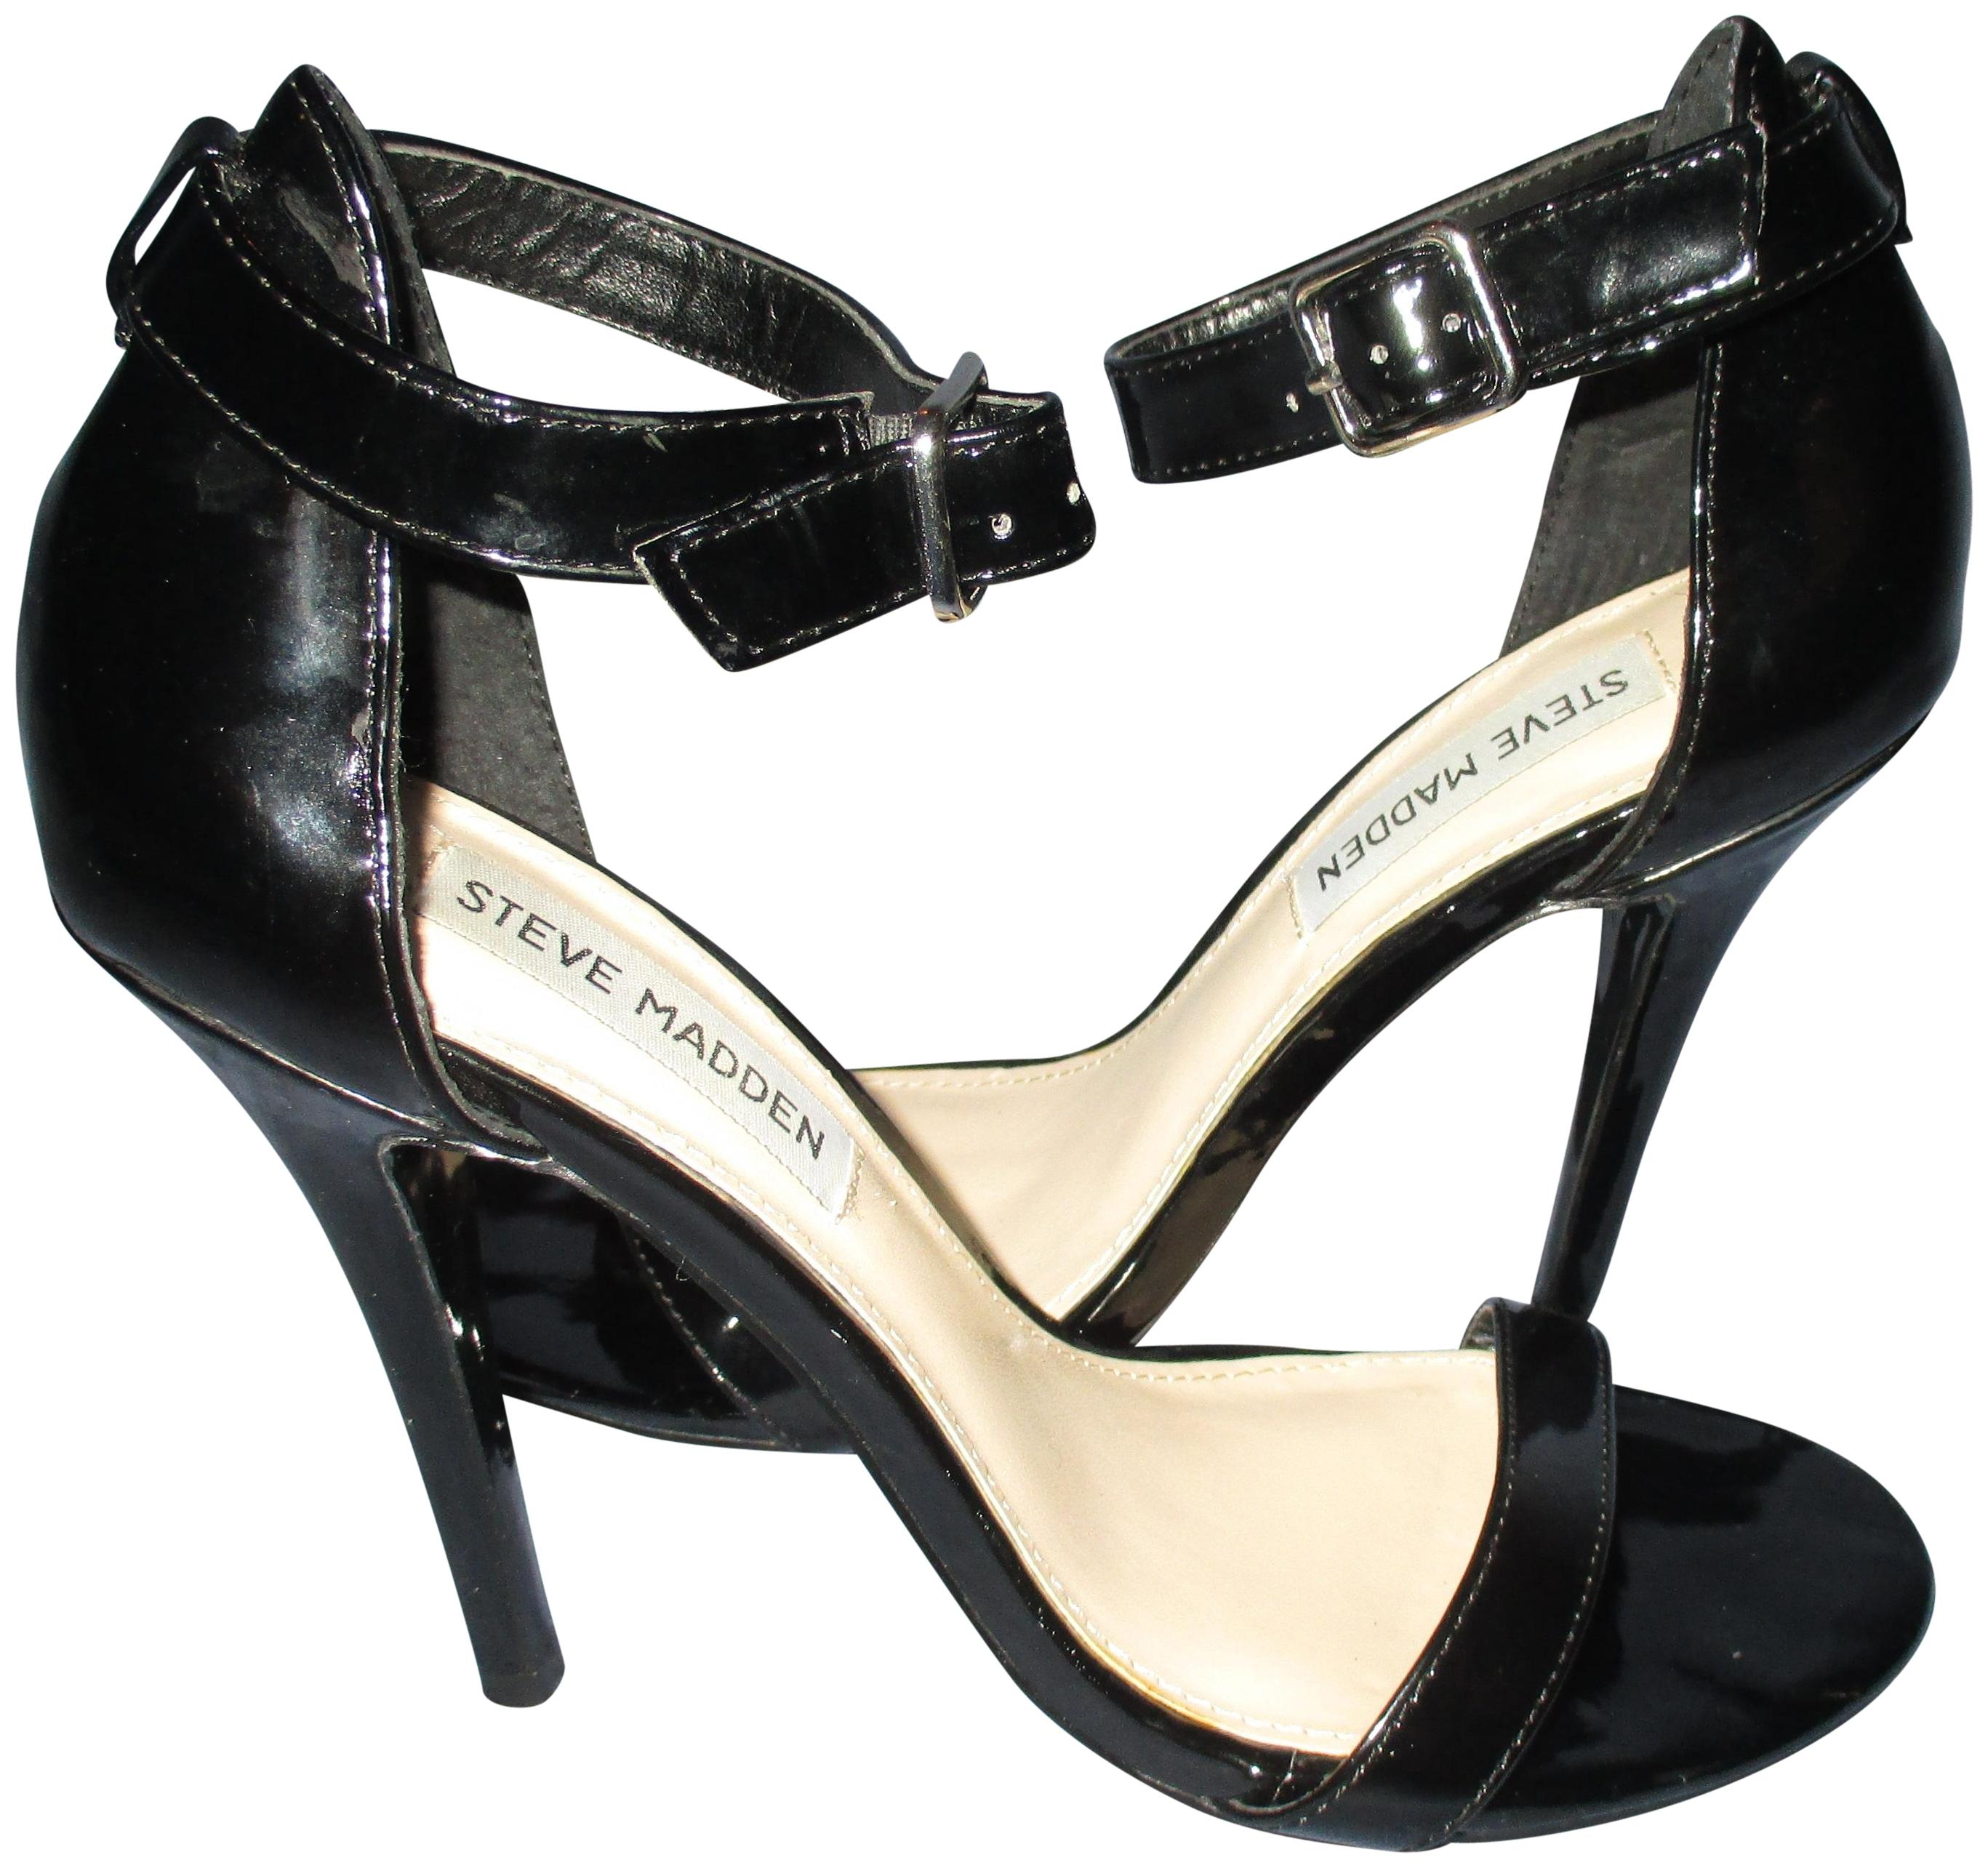 Steve Madden Black Regular Realove Heels Sandals Size US 7 Regular Black (M, B) f0010f